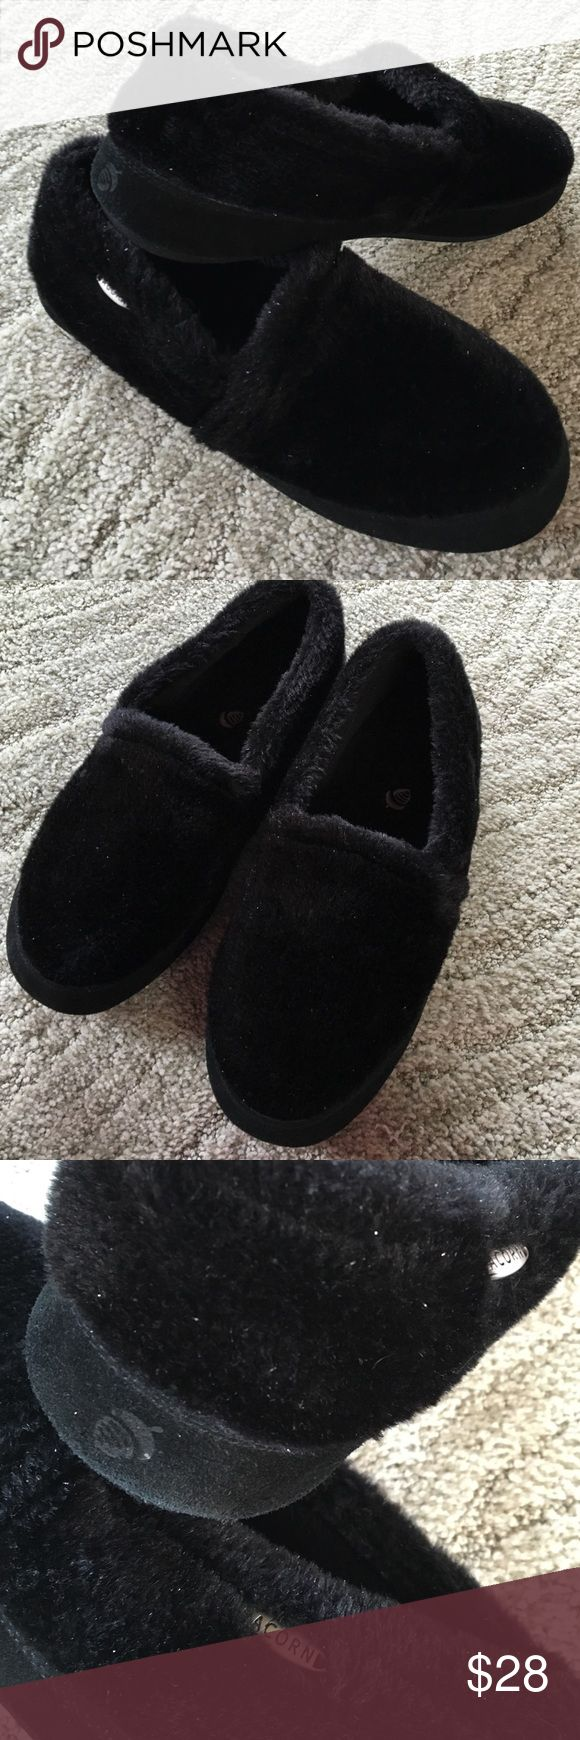 SALE❤❤ ACORN slippers  Sz 9 1/2 -10 1/2 ACORN Black slippers with sparkles size 9 1/2 to 10 1/2. Gently used. Small signs of wear on the bottom heel portion. Never worn outside.  Great for fall and winter! Acorn Shoes Slippers